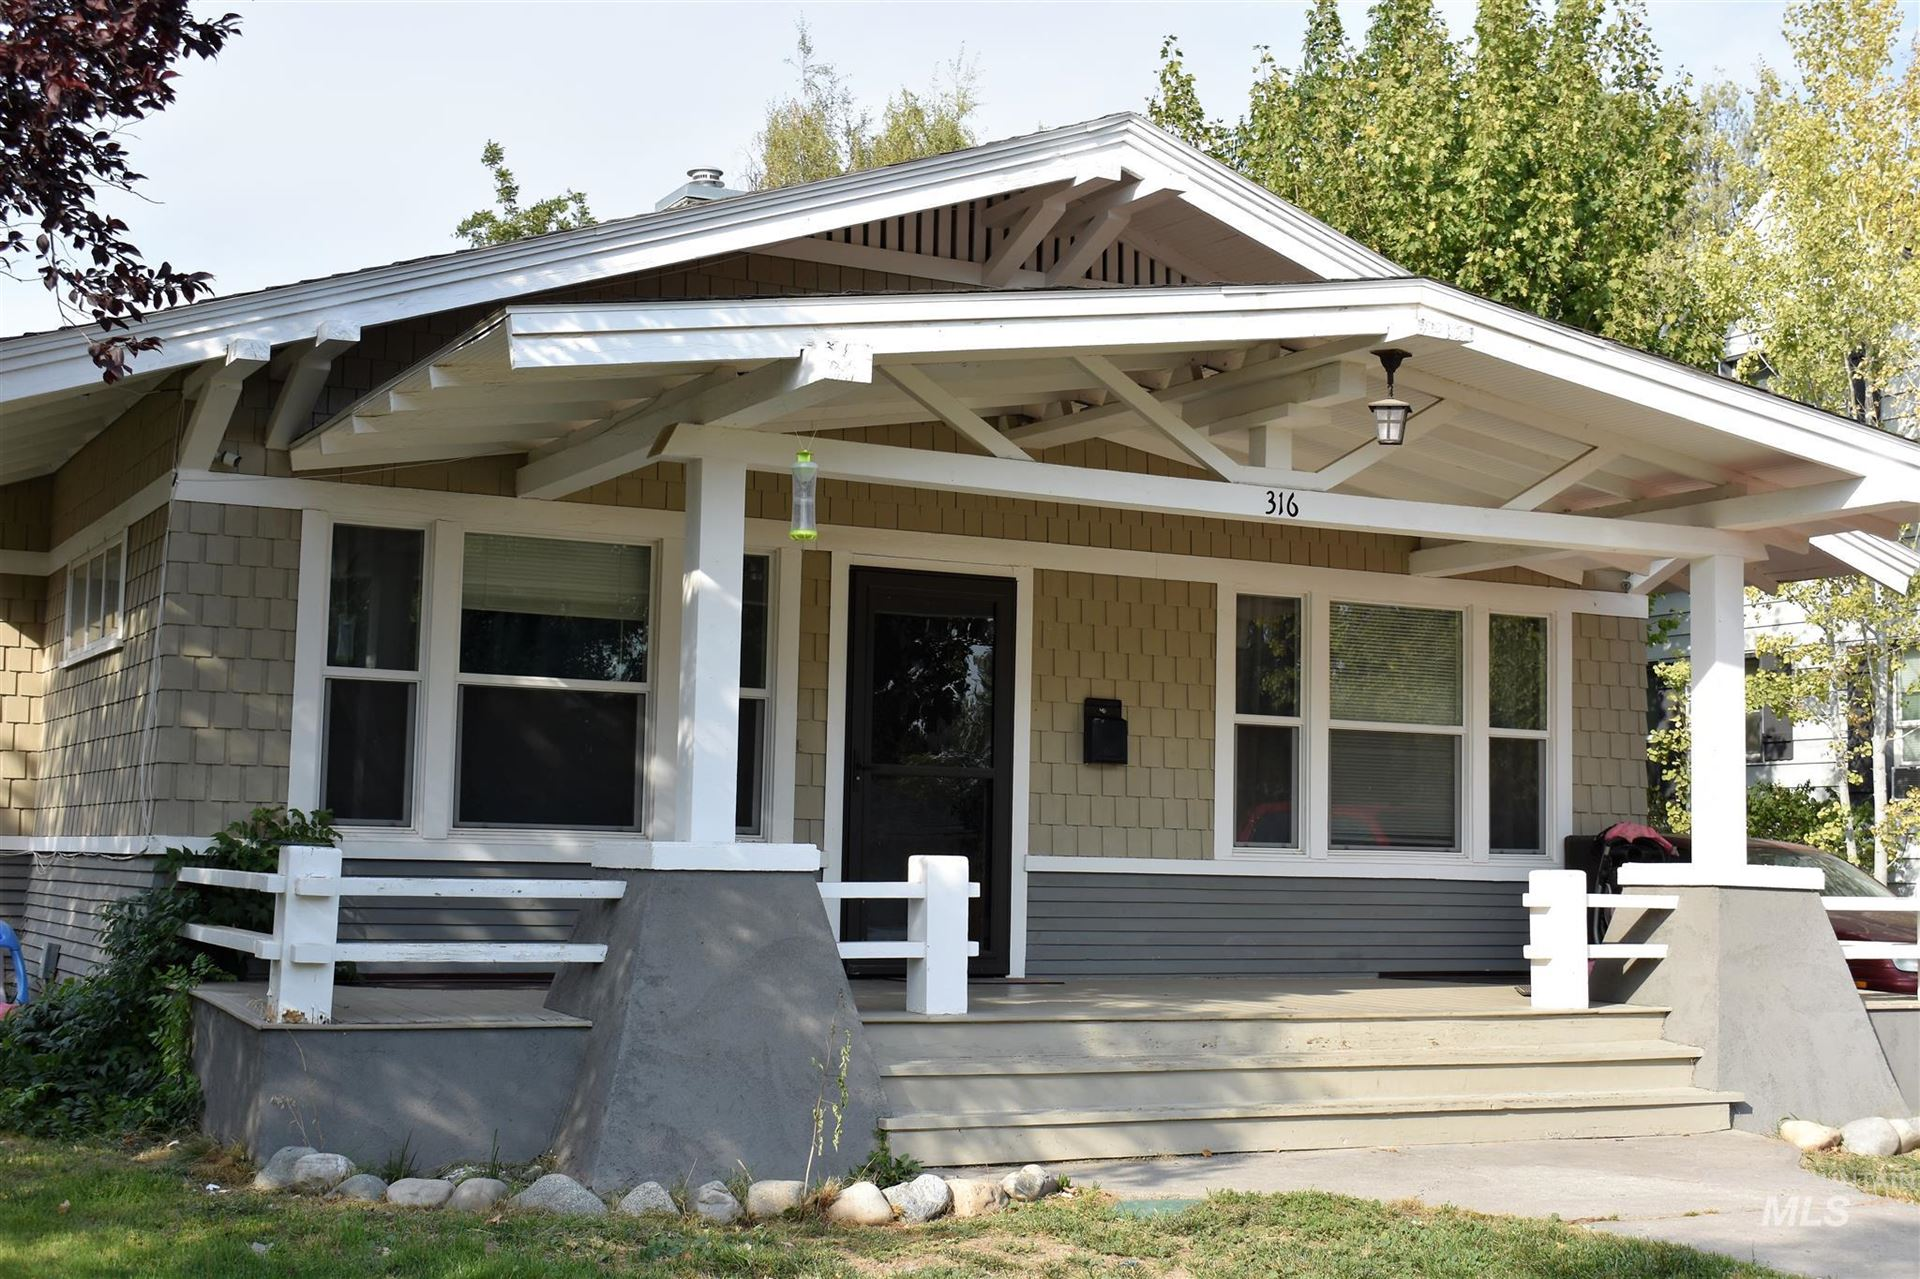 Photo of 316 E C, Jerome, ID 83338 (MLS # 98782012)